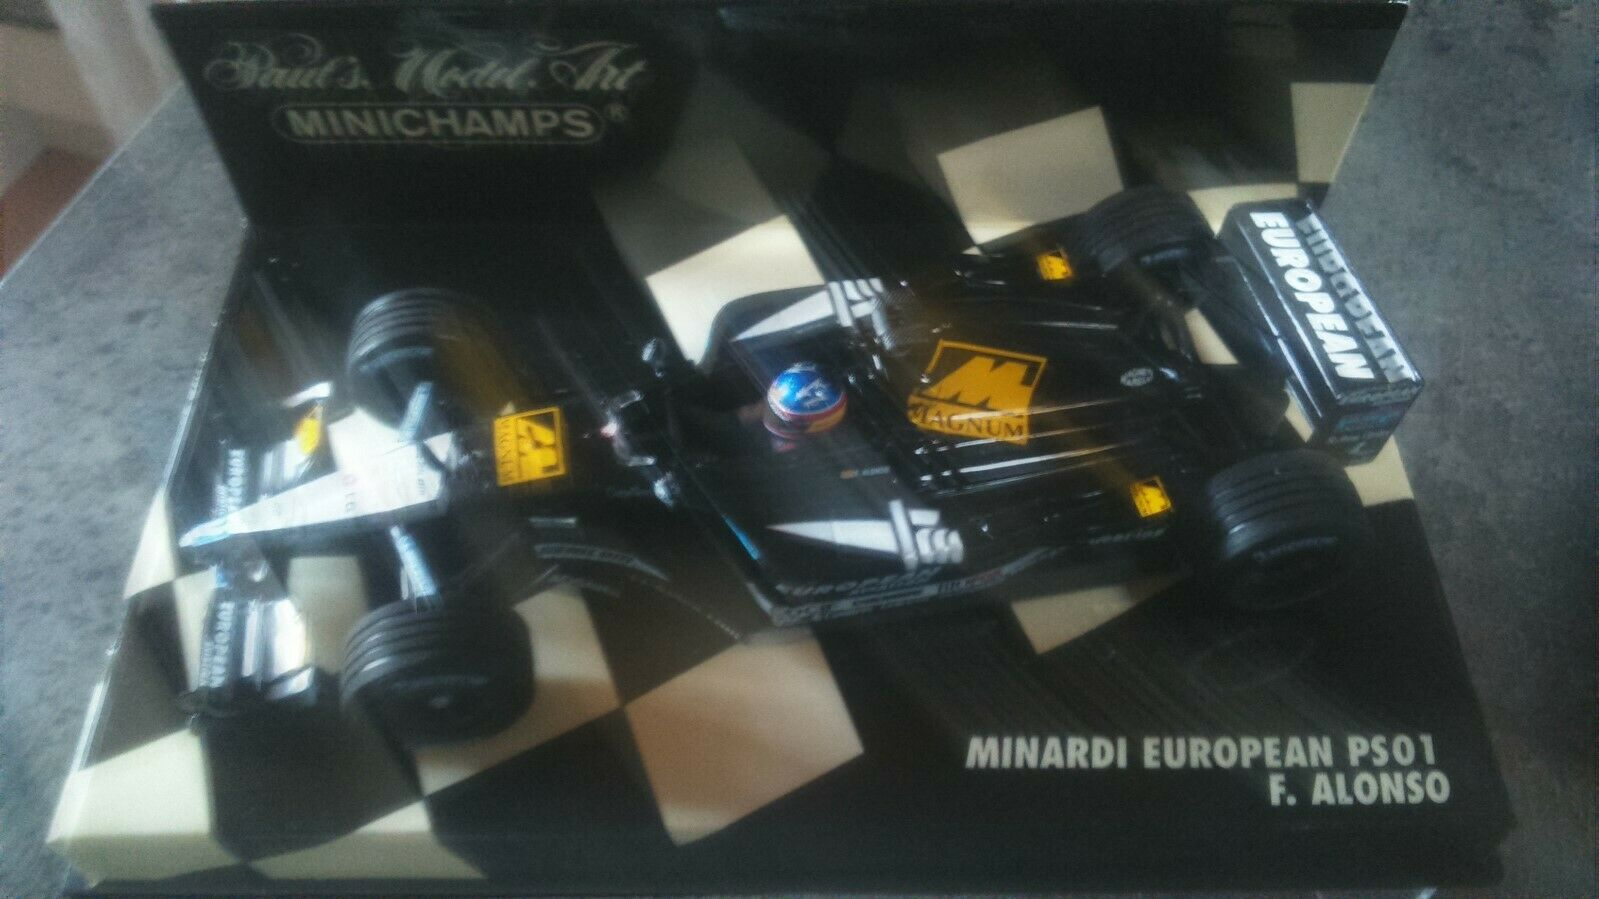 Fernando alonso    minardi ps01  minichamps